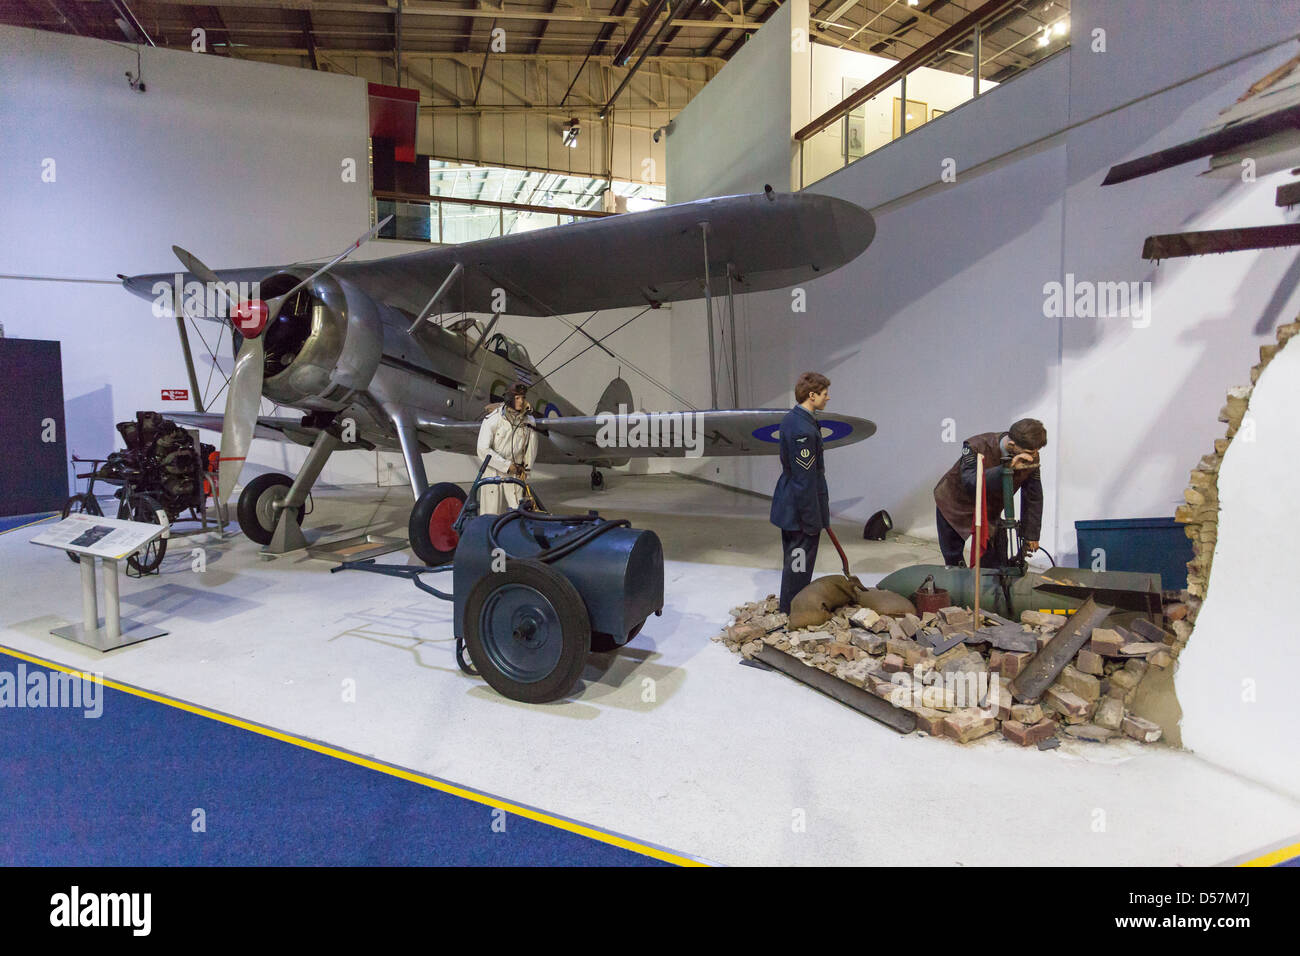 Gloster Gladiator fighter biplano, Royal Air Force (RAF Museum, London, England, Regno Unito Immagini Stock